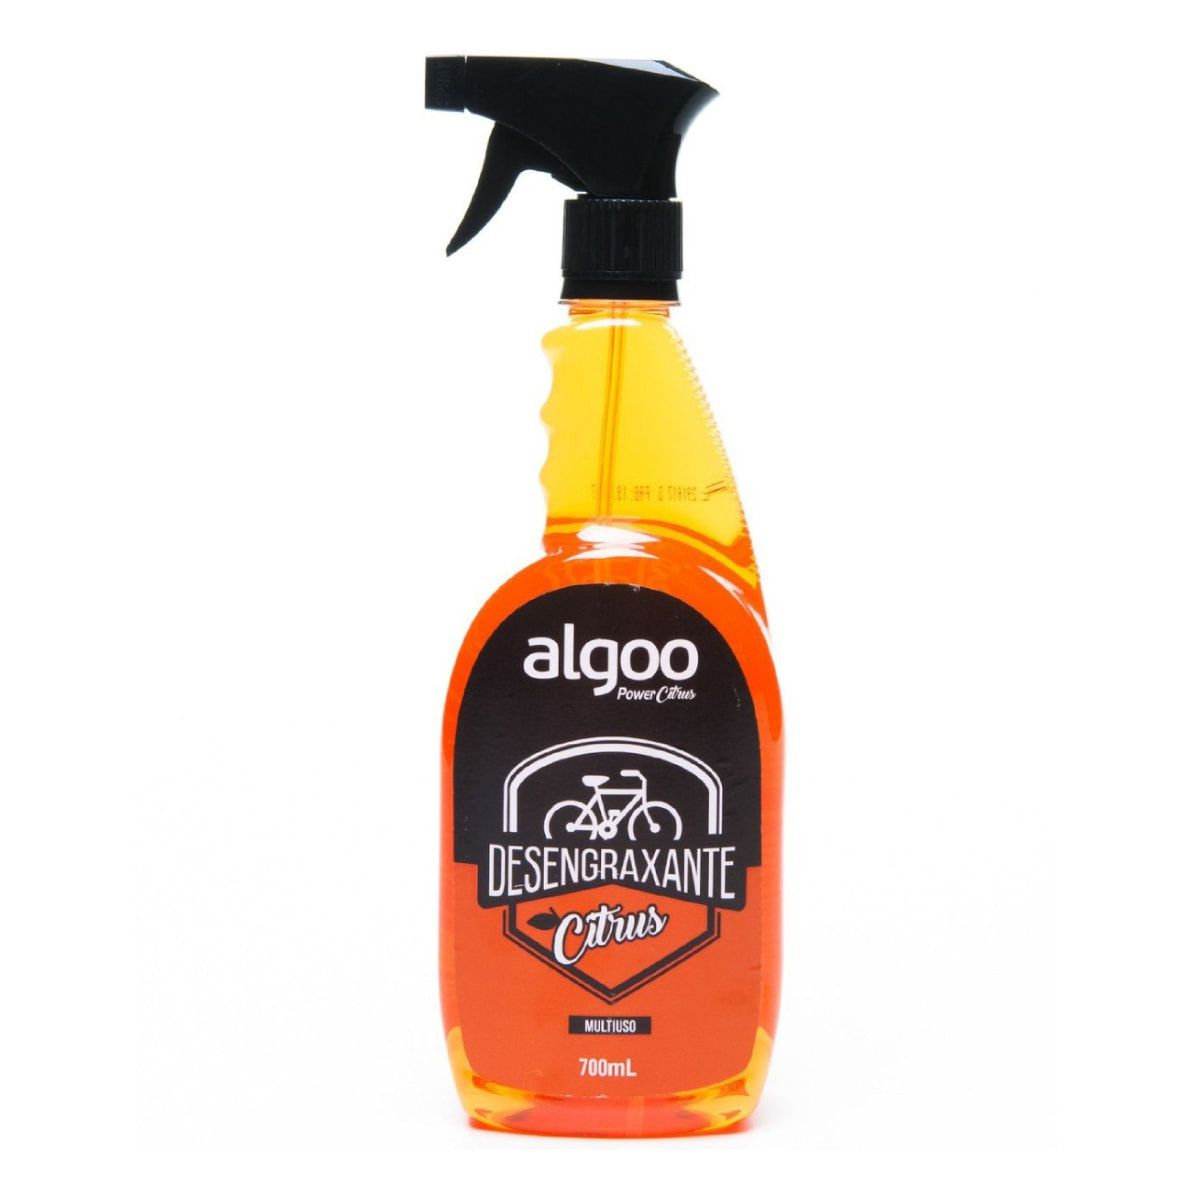 Desengraxante Liquido Algoo Power Citrus 700ml